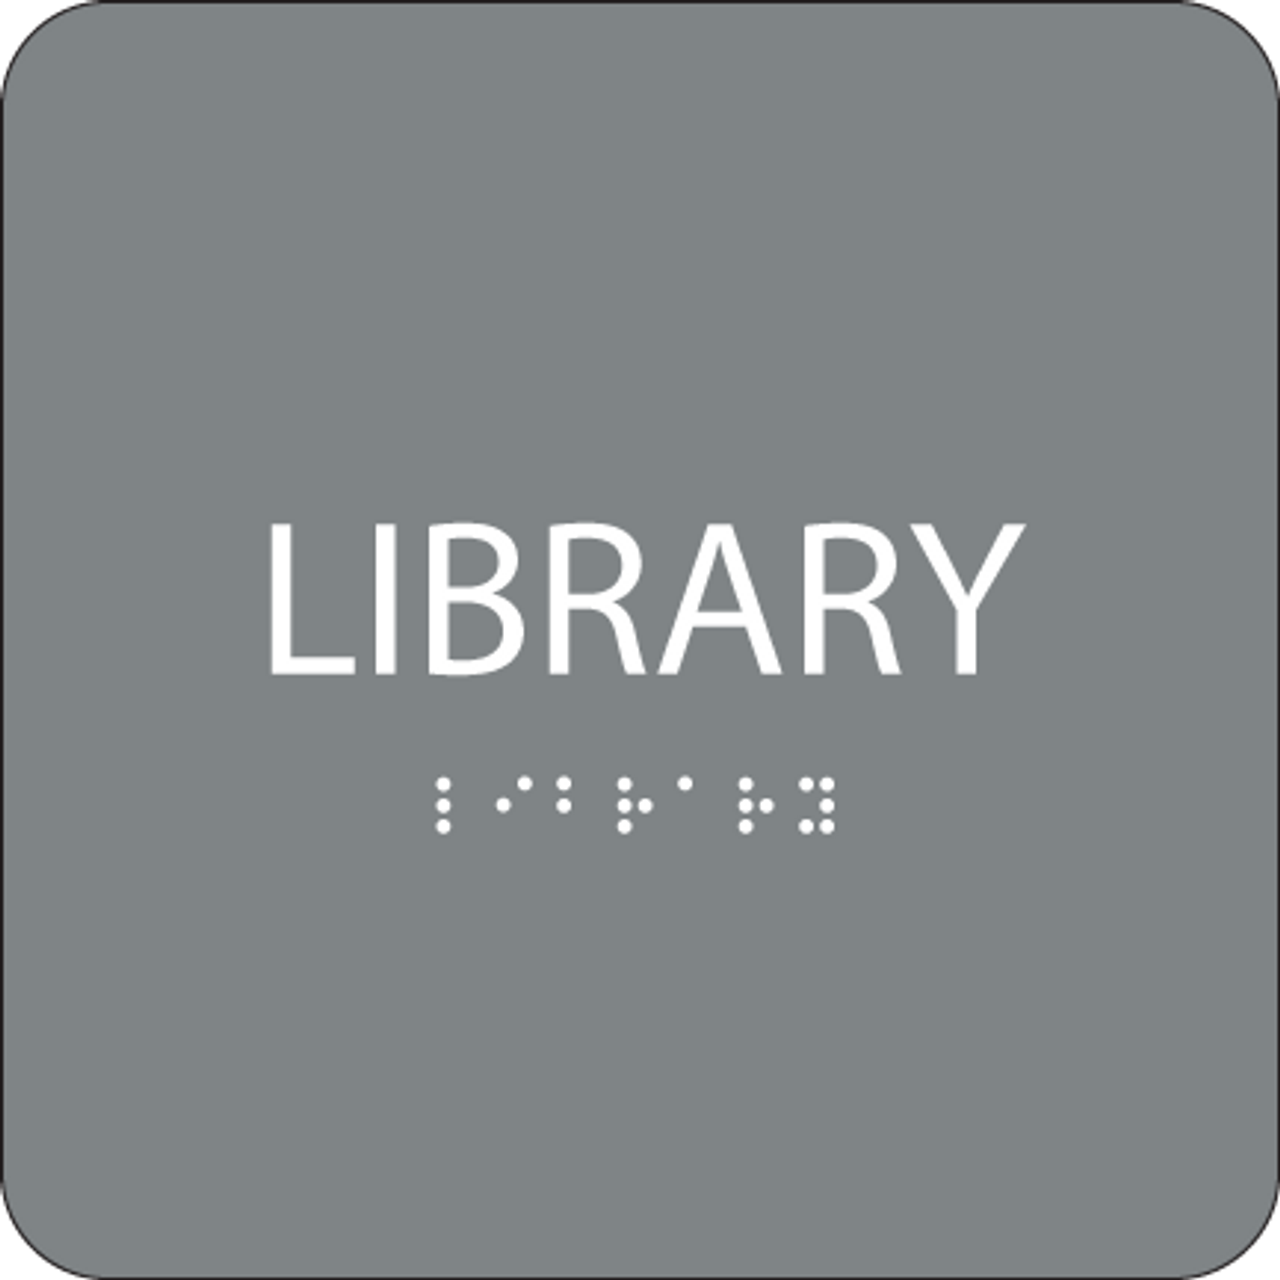 Grey Library Braille Sign